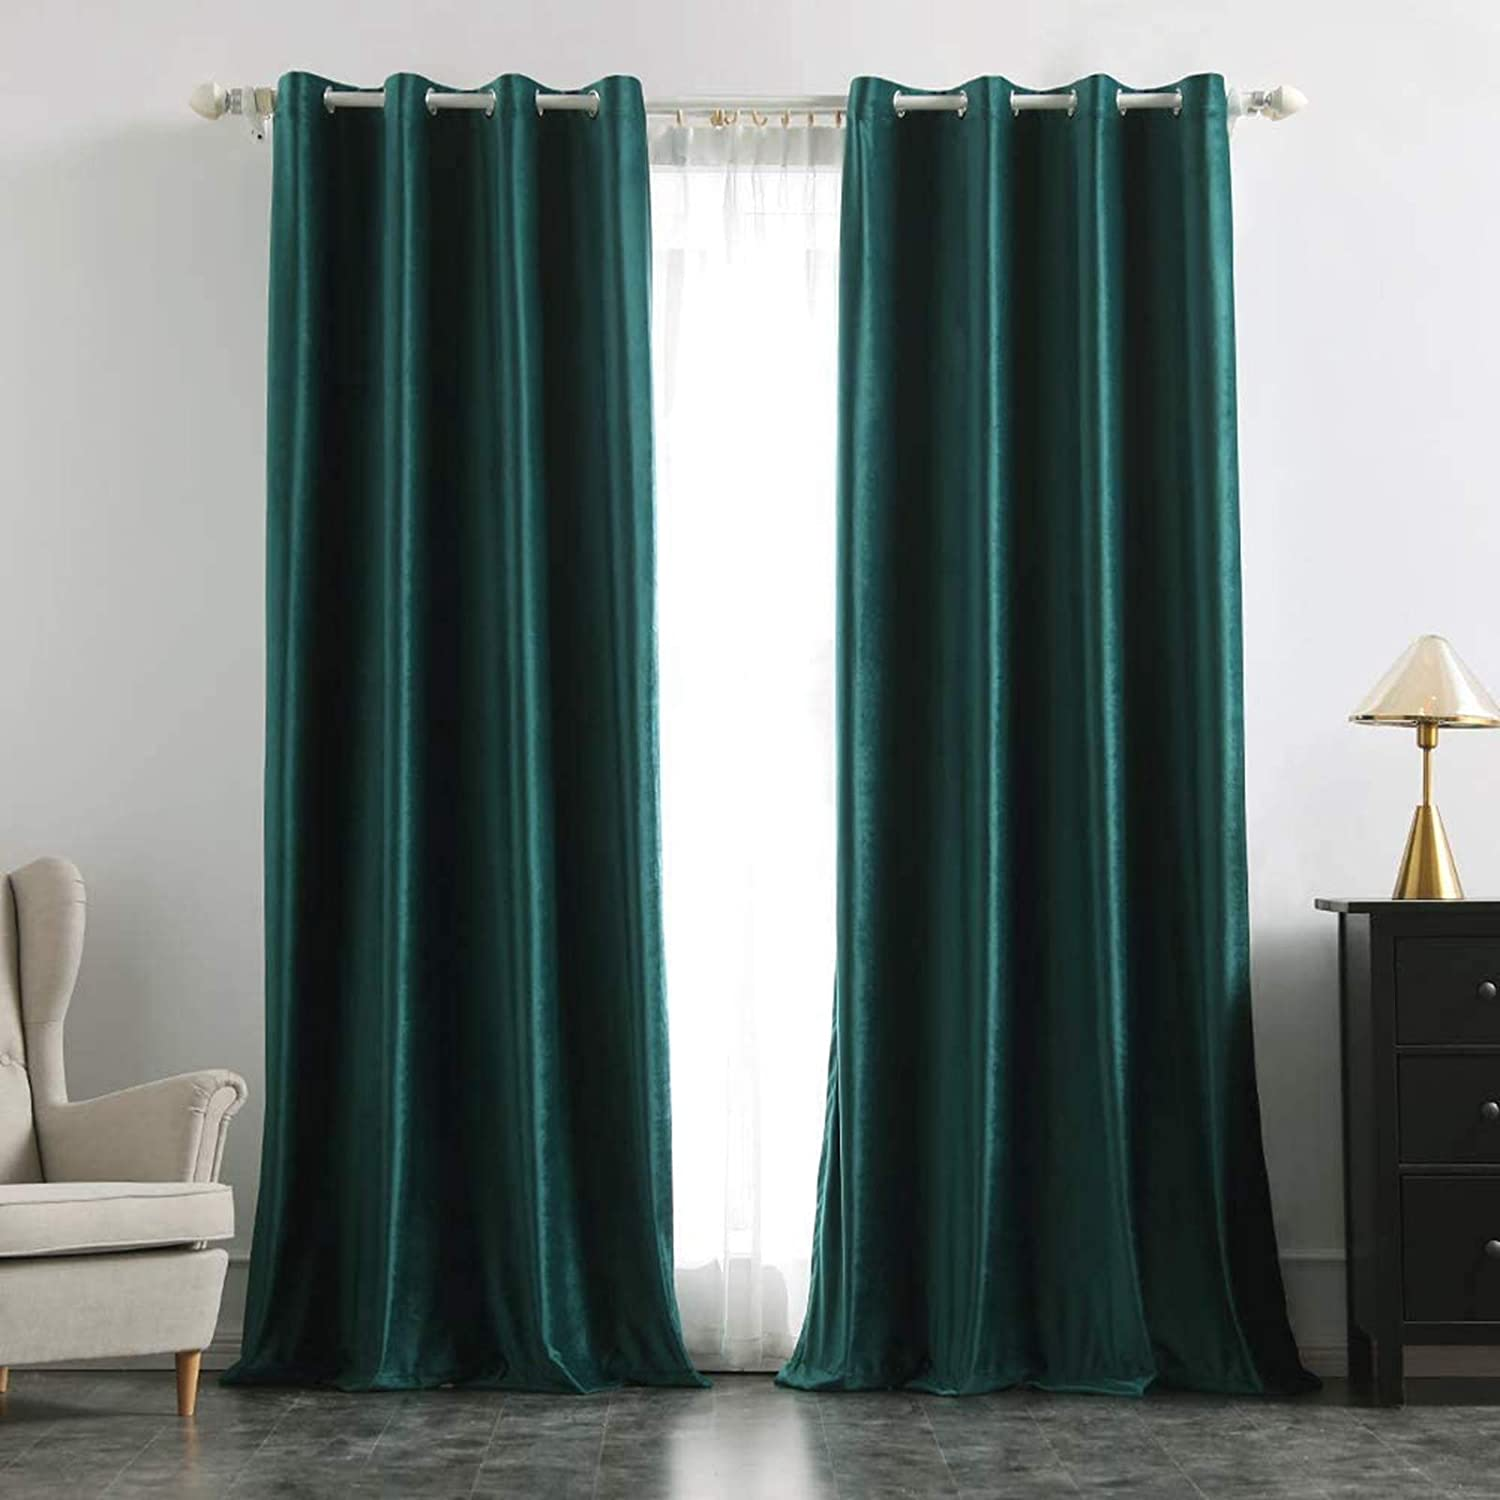 MIULEE 2 Panels Velvet Curtains Room Darkening Blackout Solid Soft Grommet Curtains Thermal Soundproof Curtains / Drapes / Panels for Living Room Bedroom 52 x 90 Inch Dark Green Dark Green W52 x L90